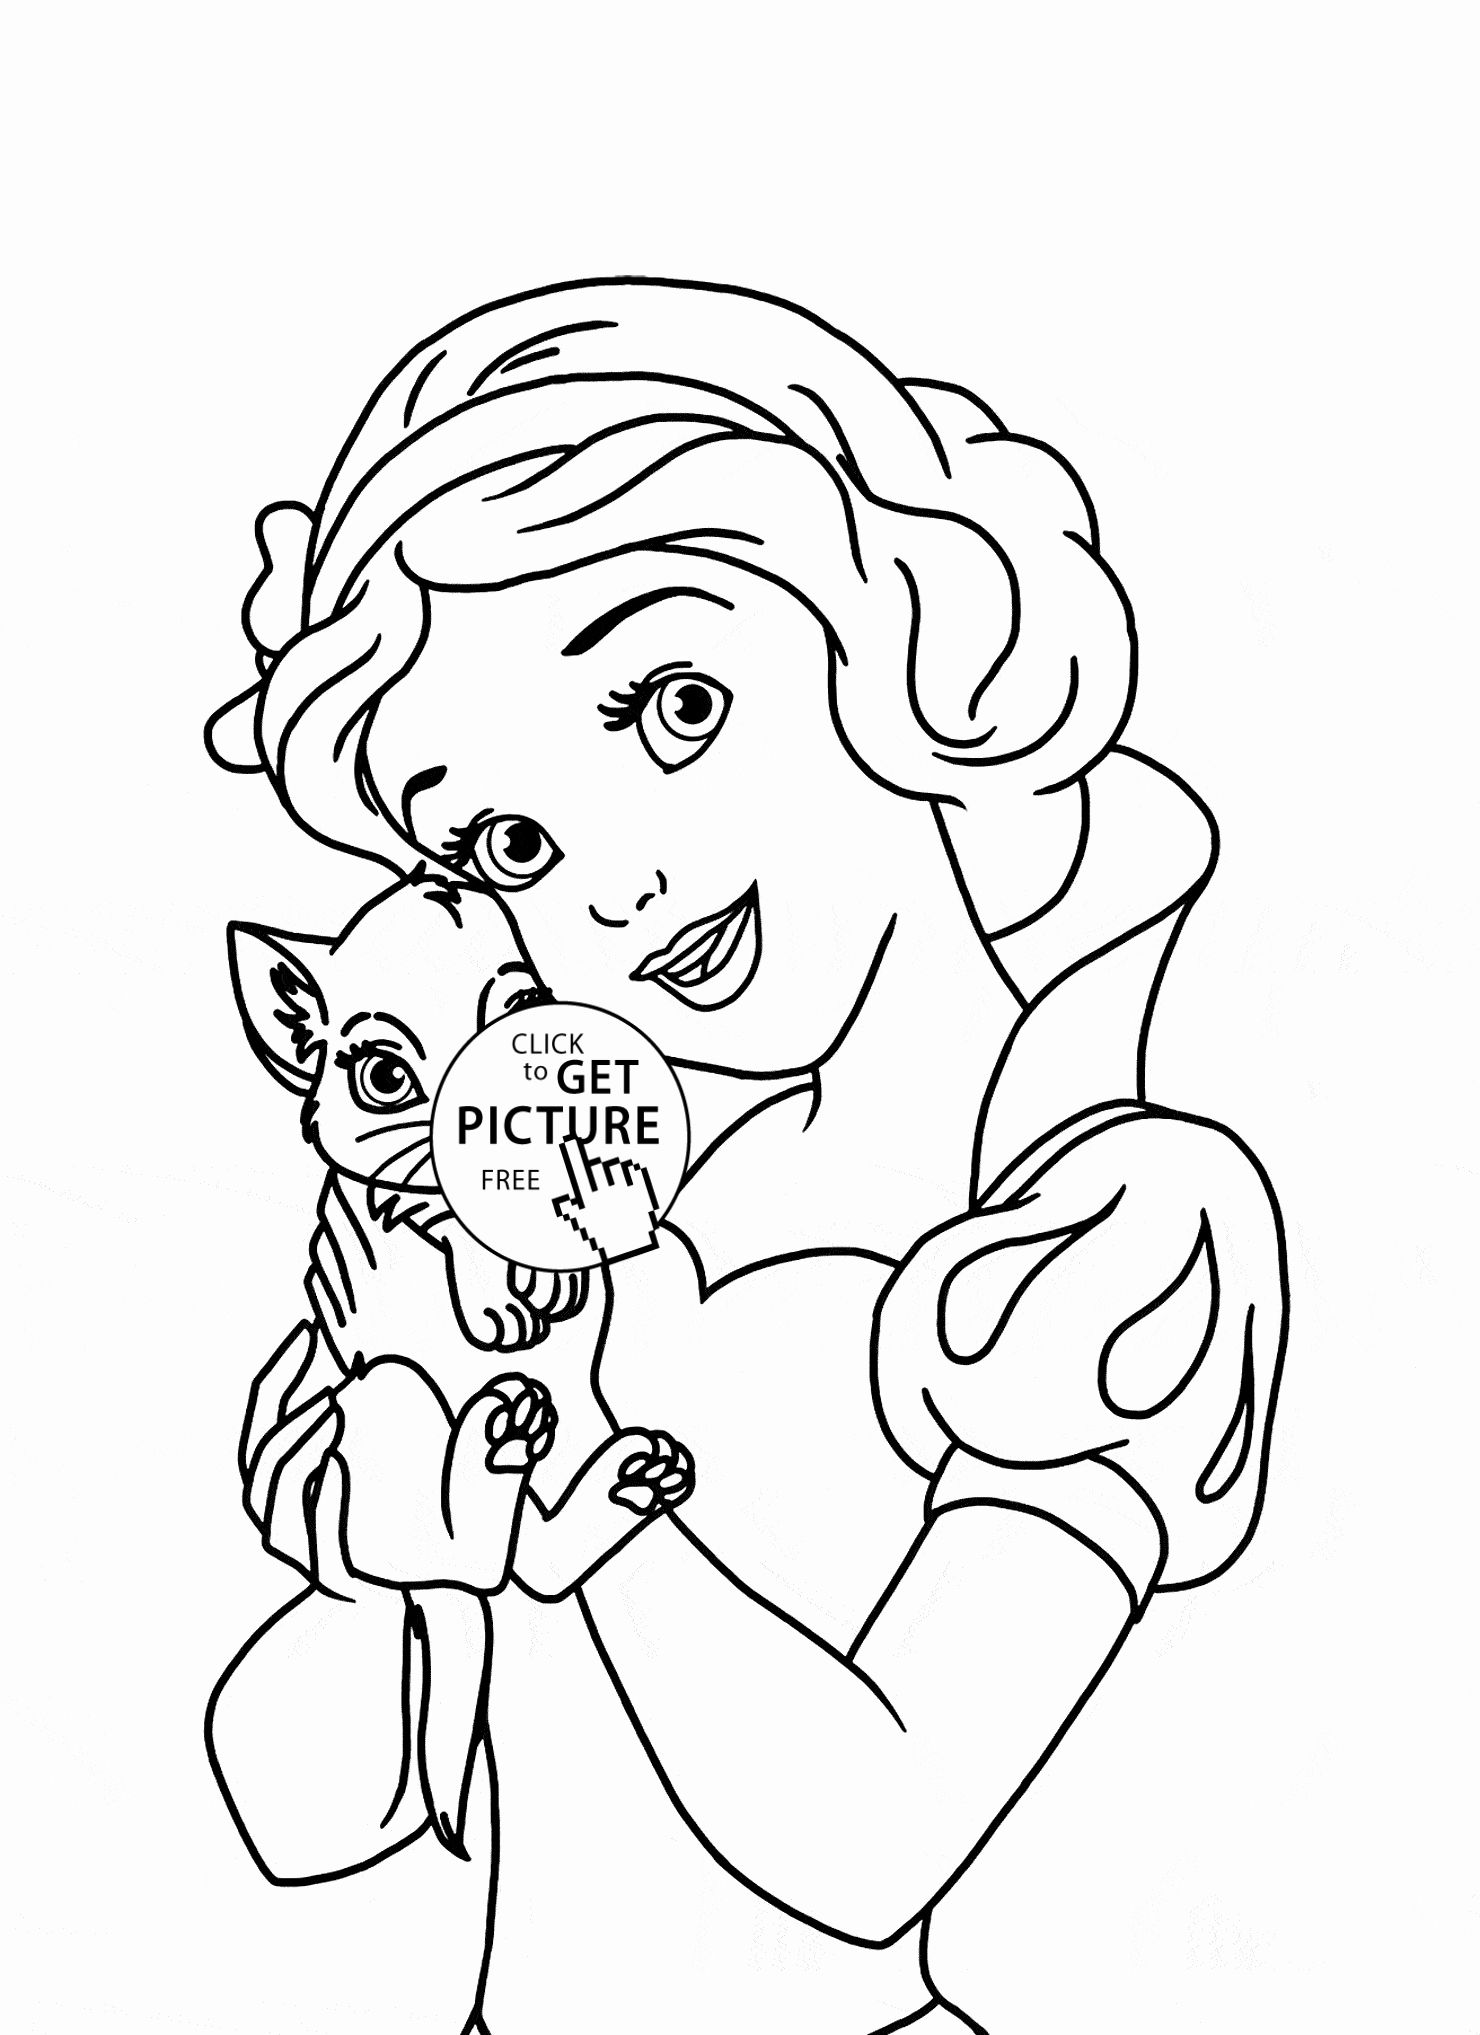 Princess Coloring Games Online Luxury Princess Cat Coloring Page Coloring Home